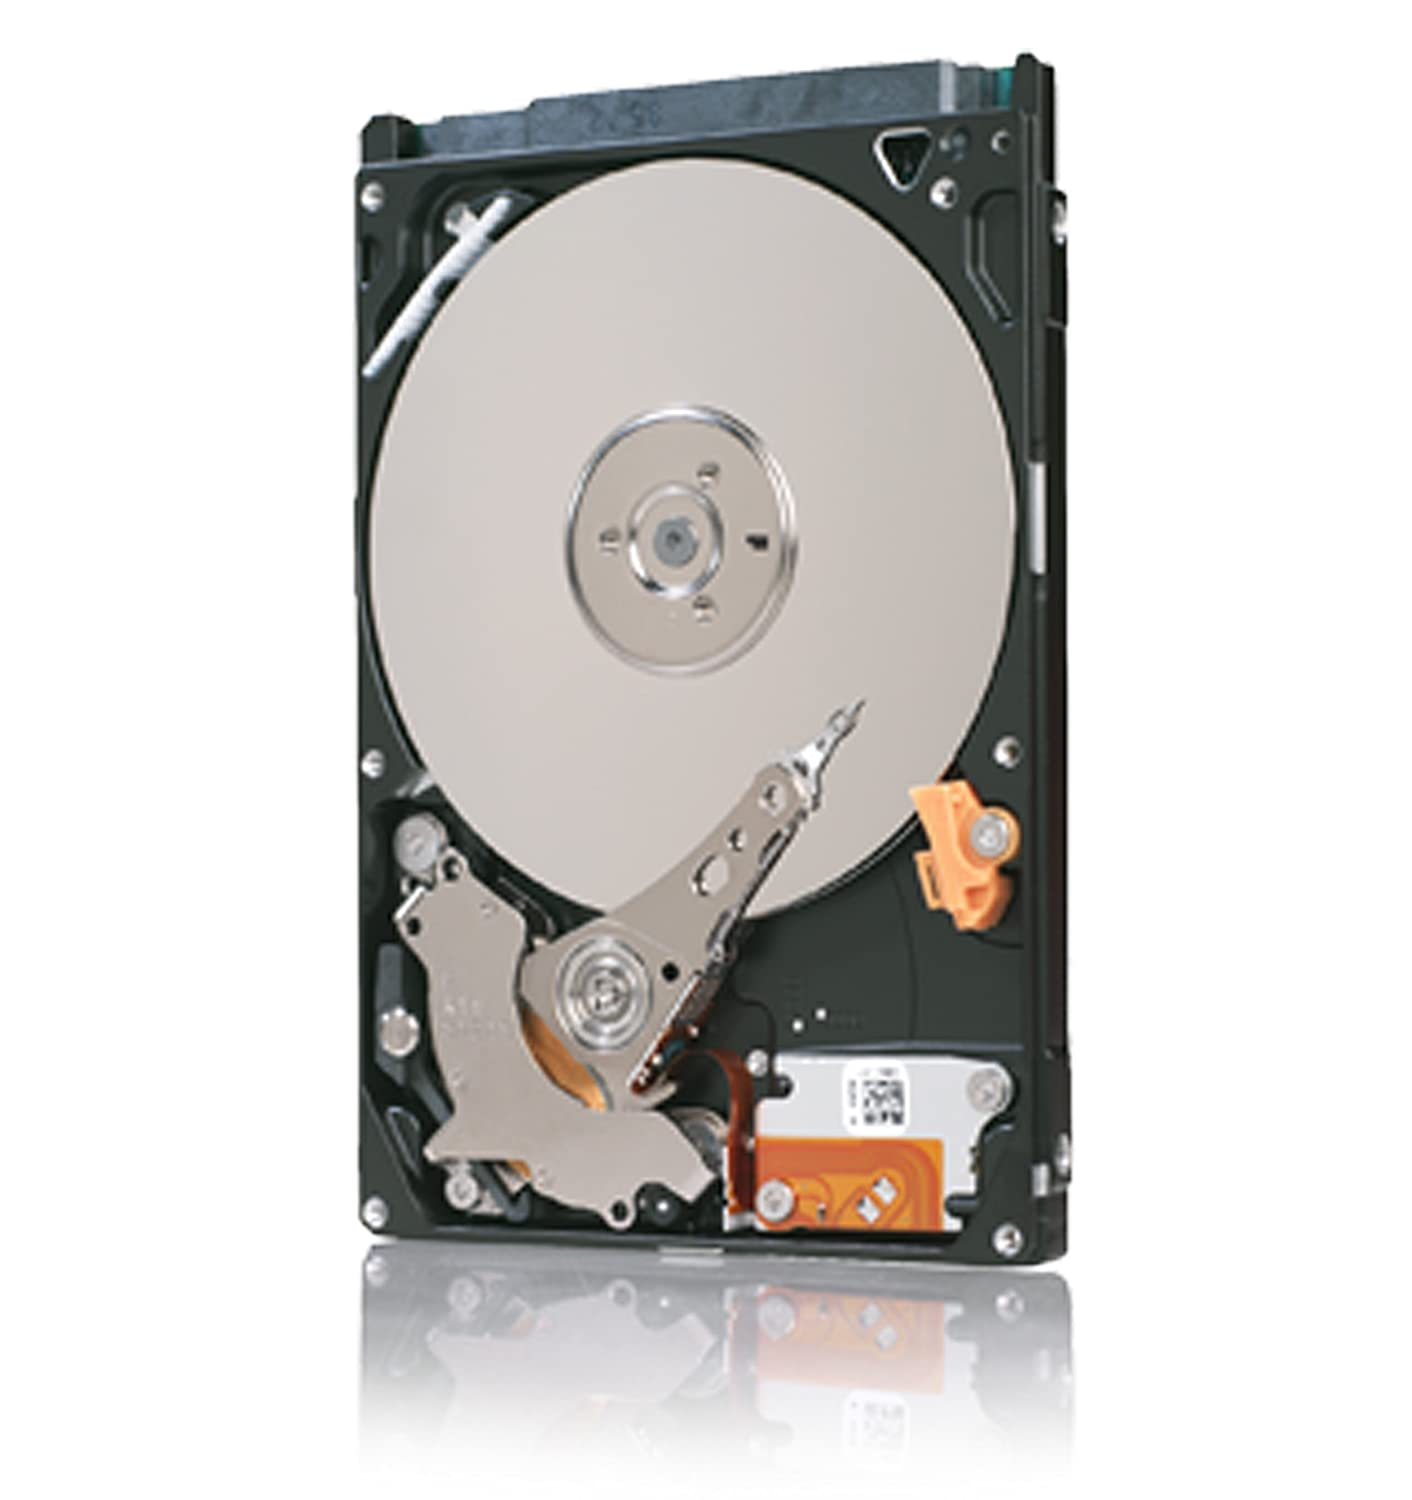 Seagate Momentus XT 500 GB 2.5 Inch Solid State Hybrid Drive